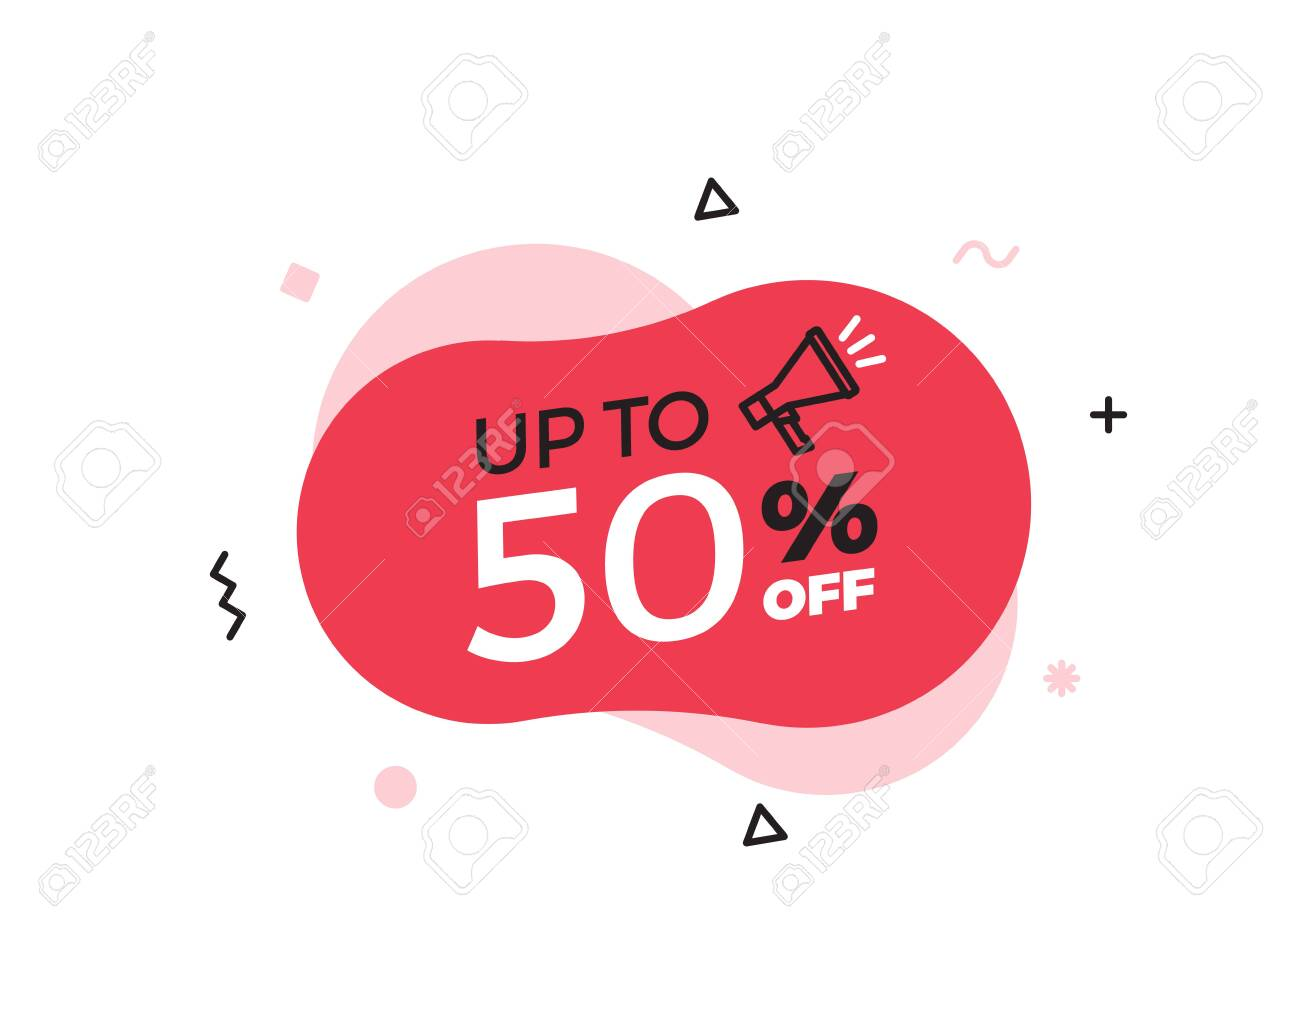 Modern abstract vector banner with up to 50% offer special sale text. 50 percent price discount. Red shape graphic design element for advertising campaigns. Vector illustration with geometric shapes and megaphone icon - 134503203